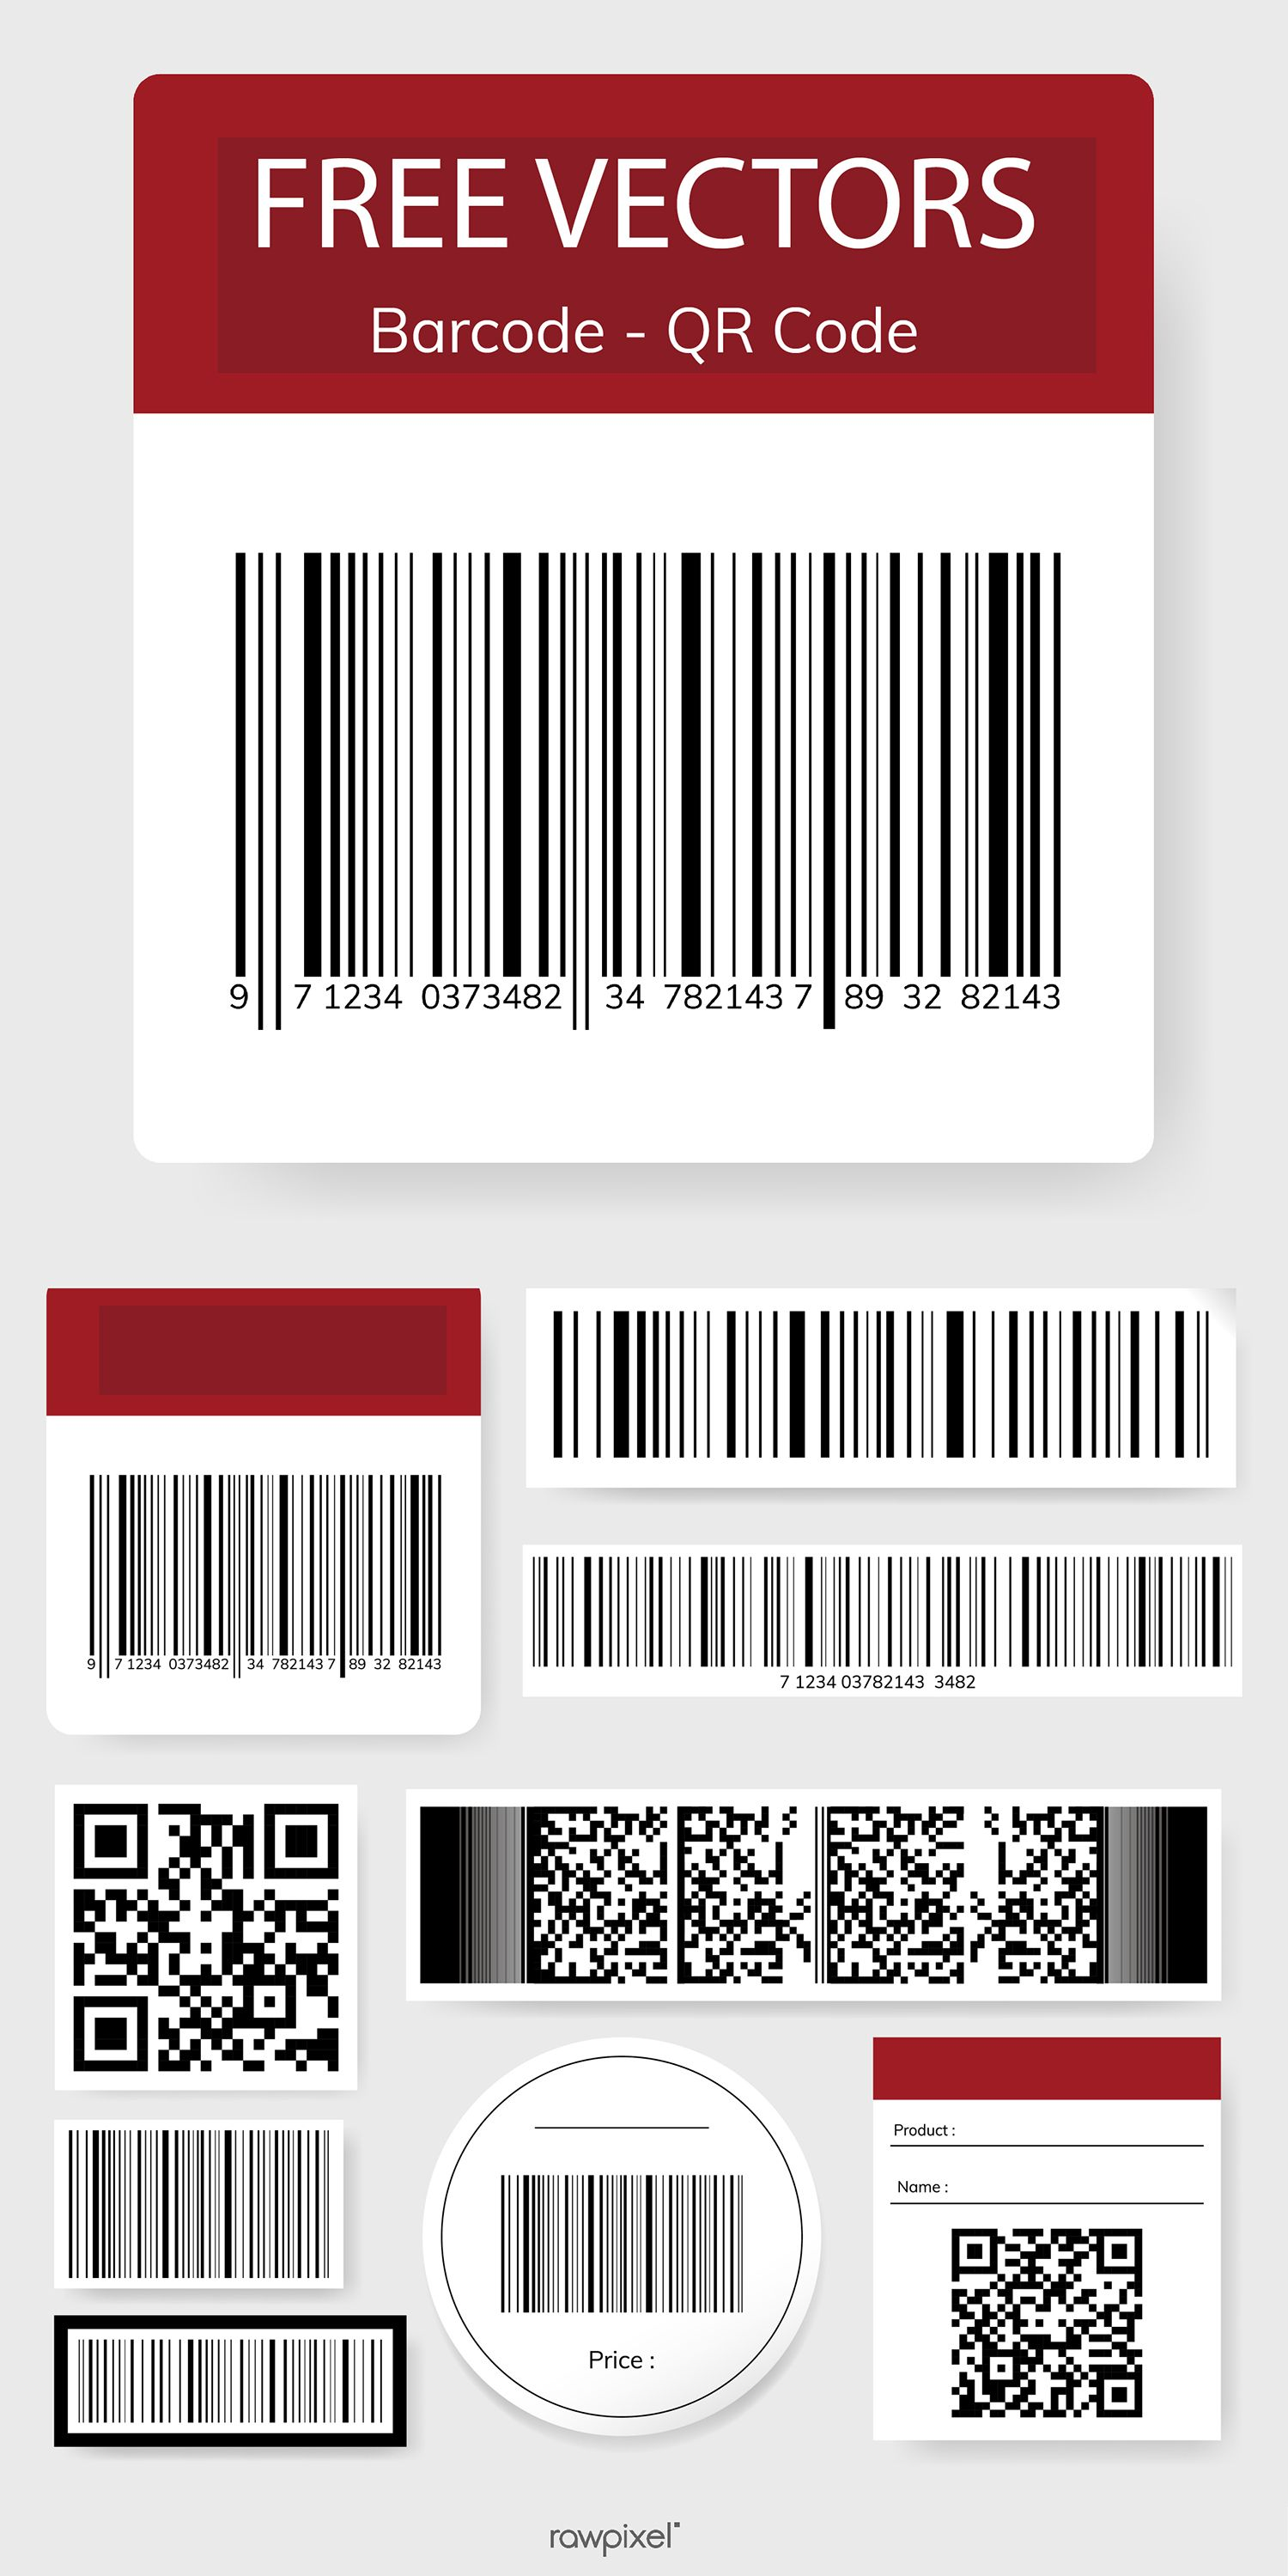 Download This Set Of Barcode And Qr Code Vectors As Well As Other